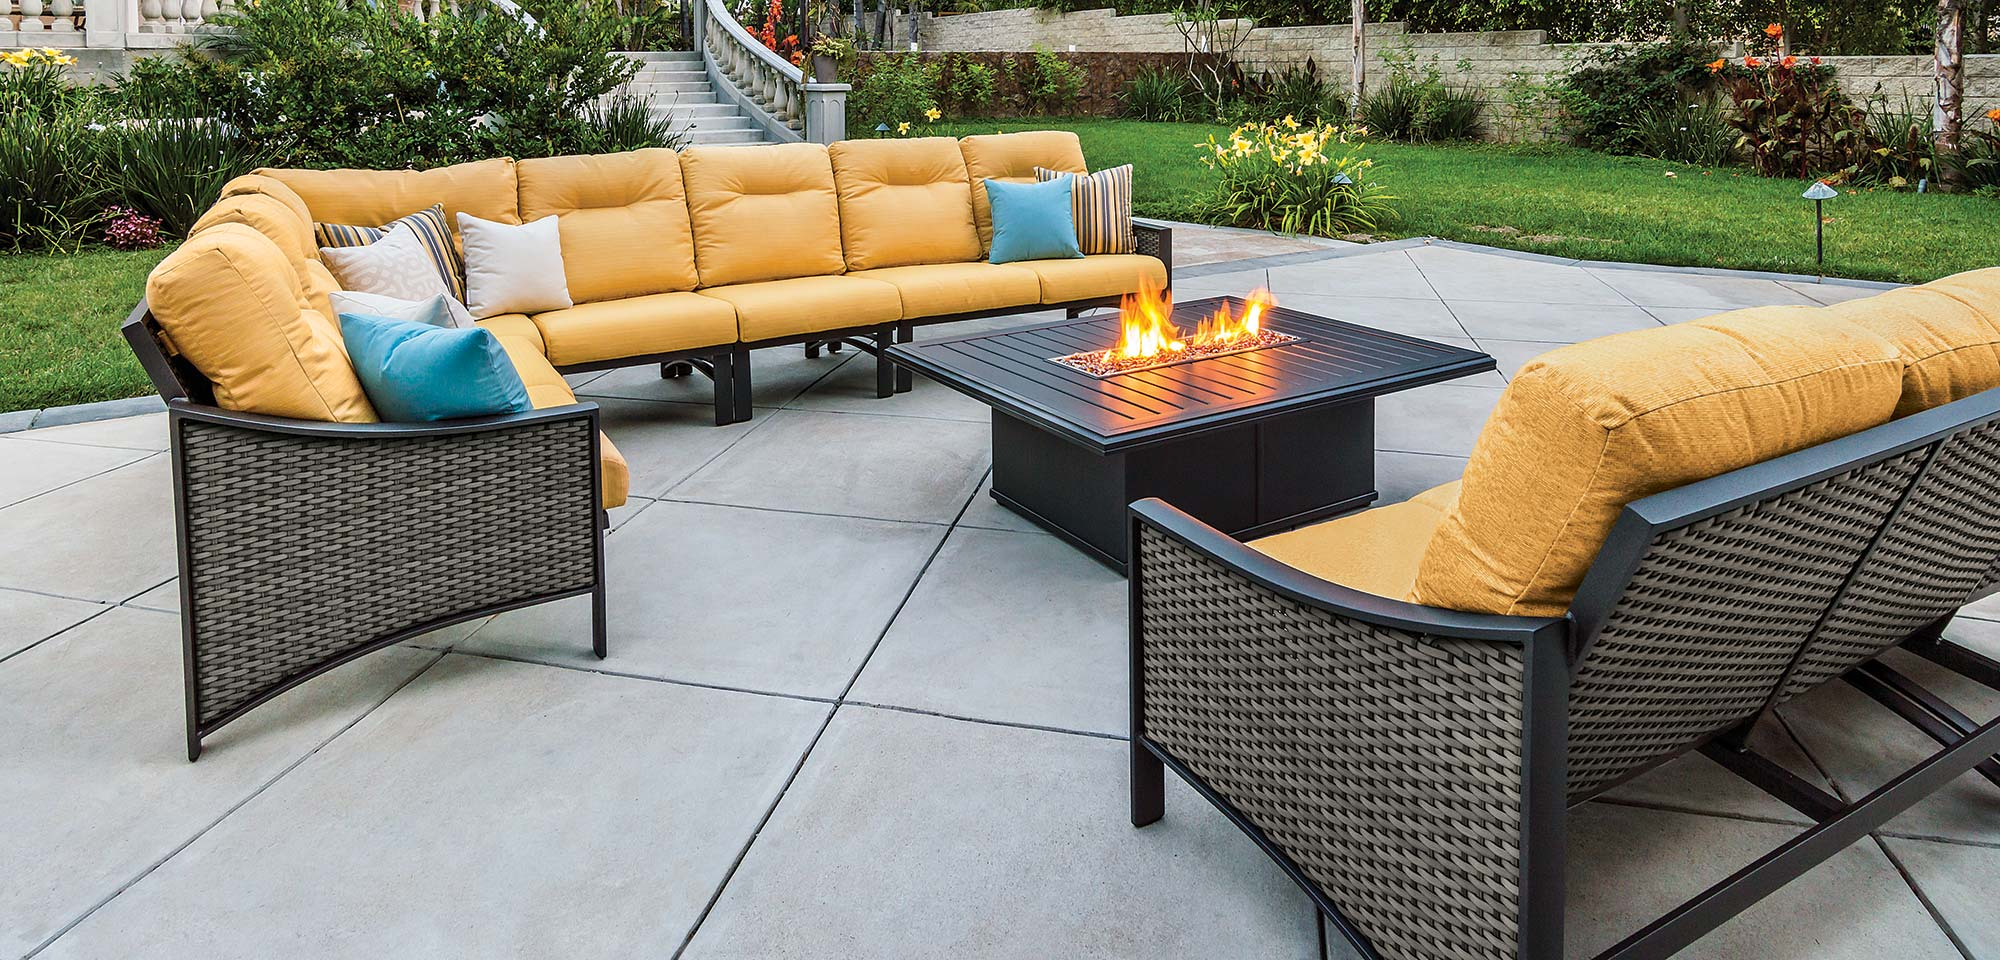 Patio Furniture | Outdoor Patio Furniture Sets